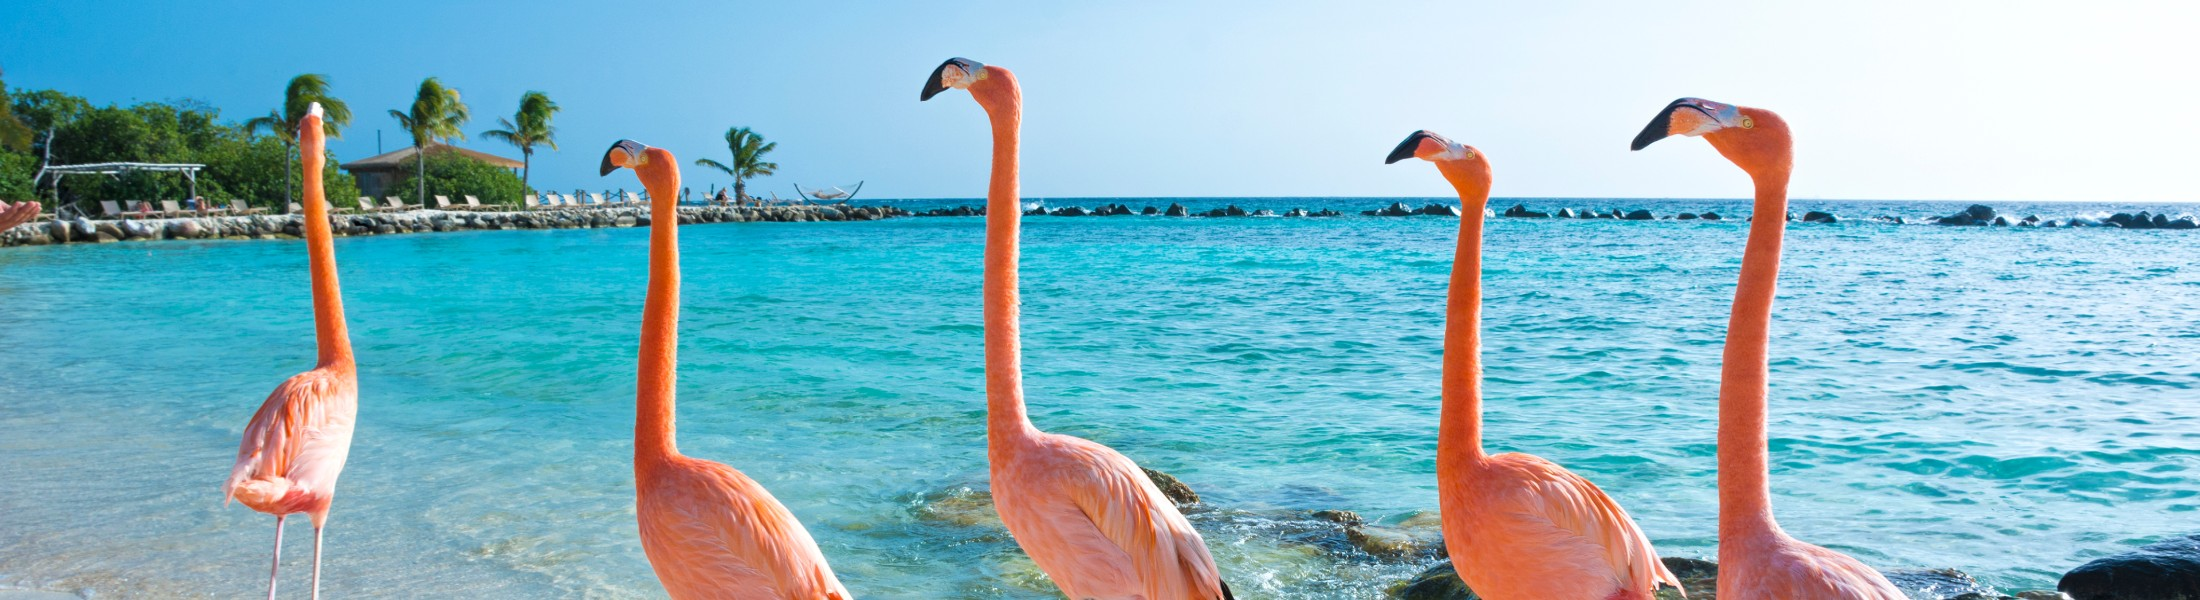 Pink Flamingos on the beach in the Caribbean